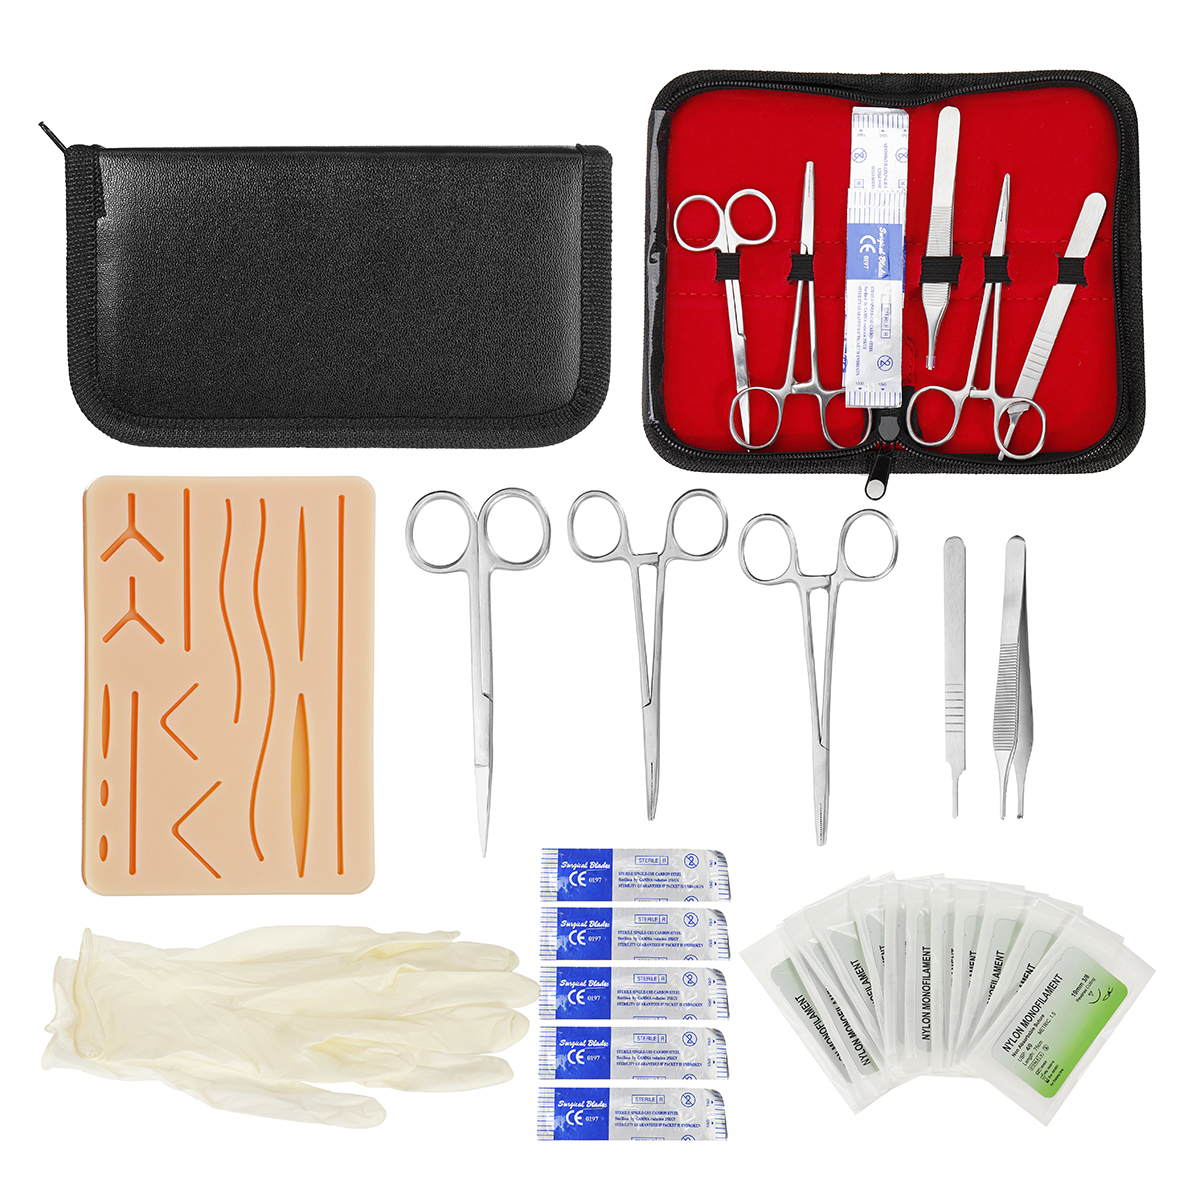 25 In 1 Medical Skin Suture Surgical Training Kit Silicone Pad Needle Scissors Tools Kit